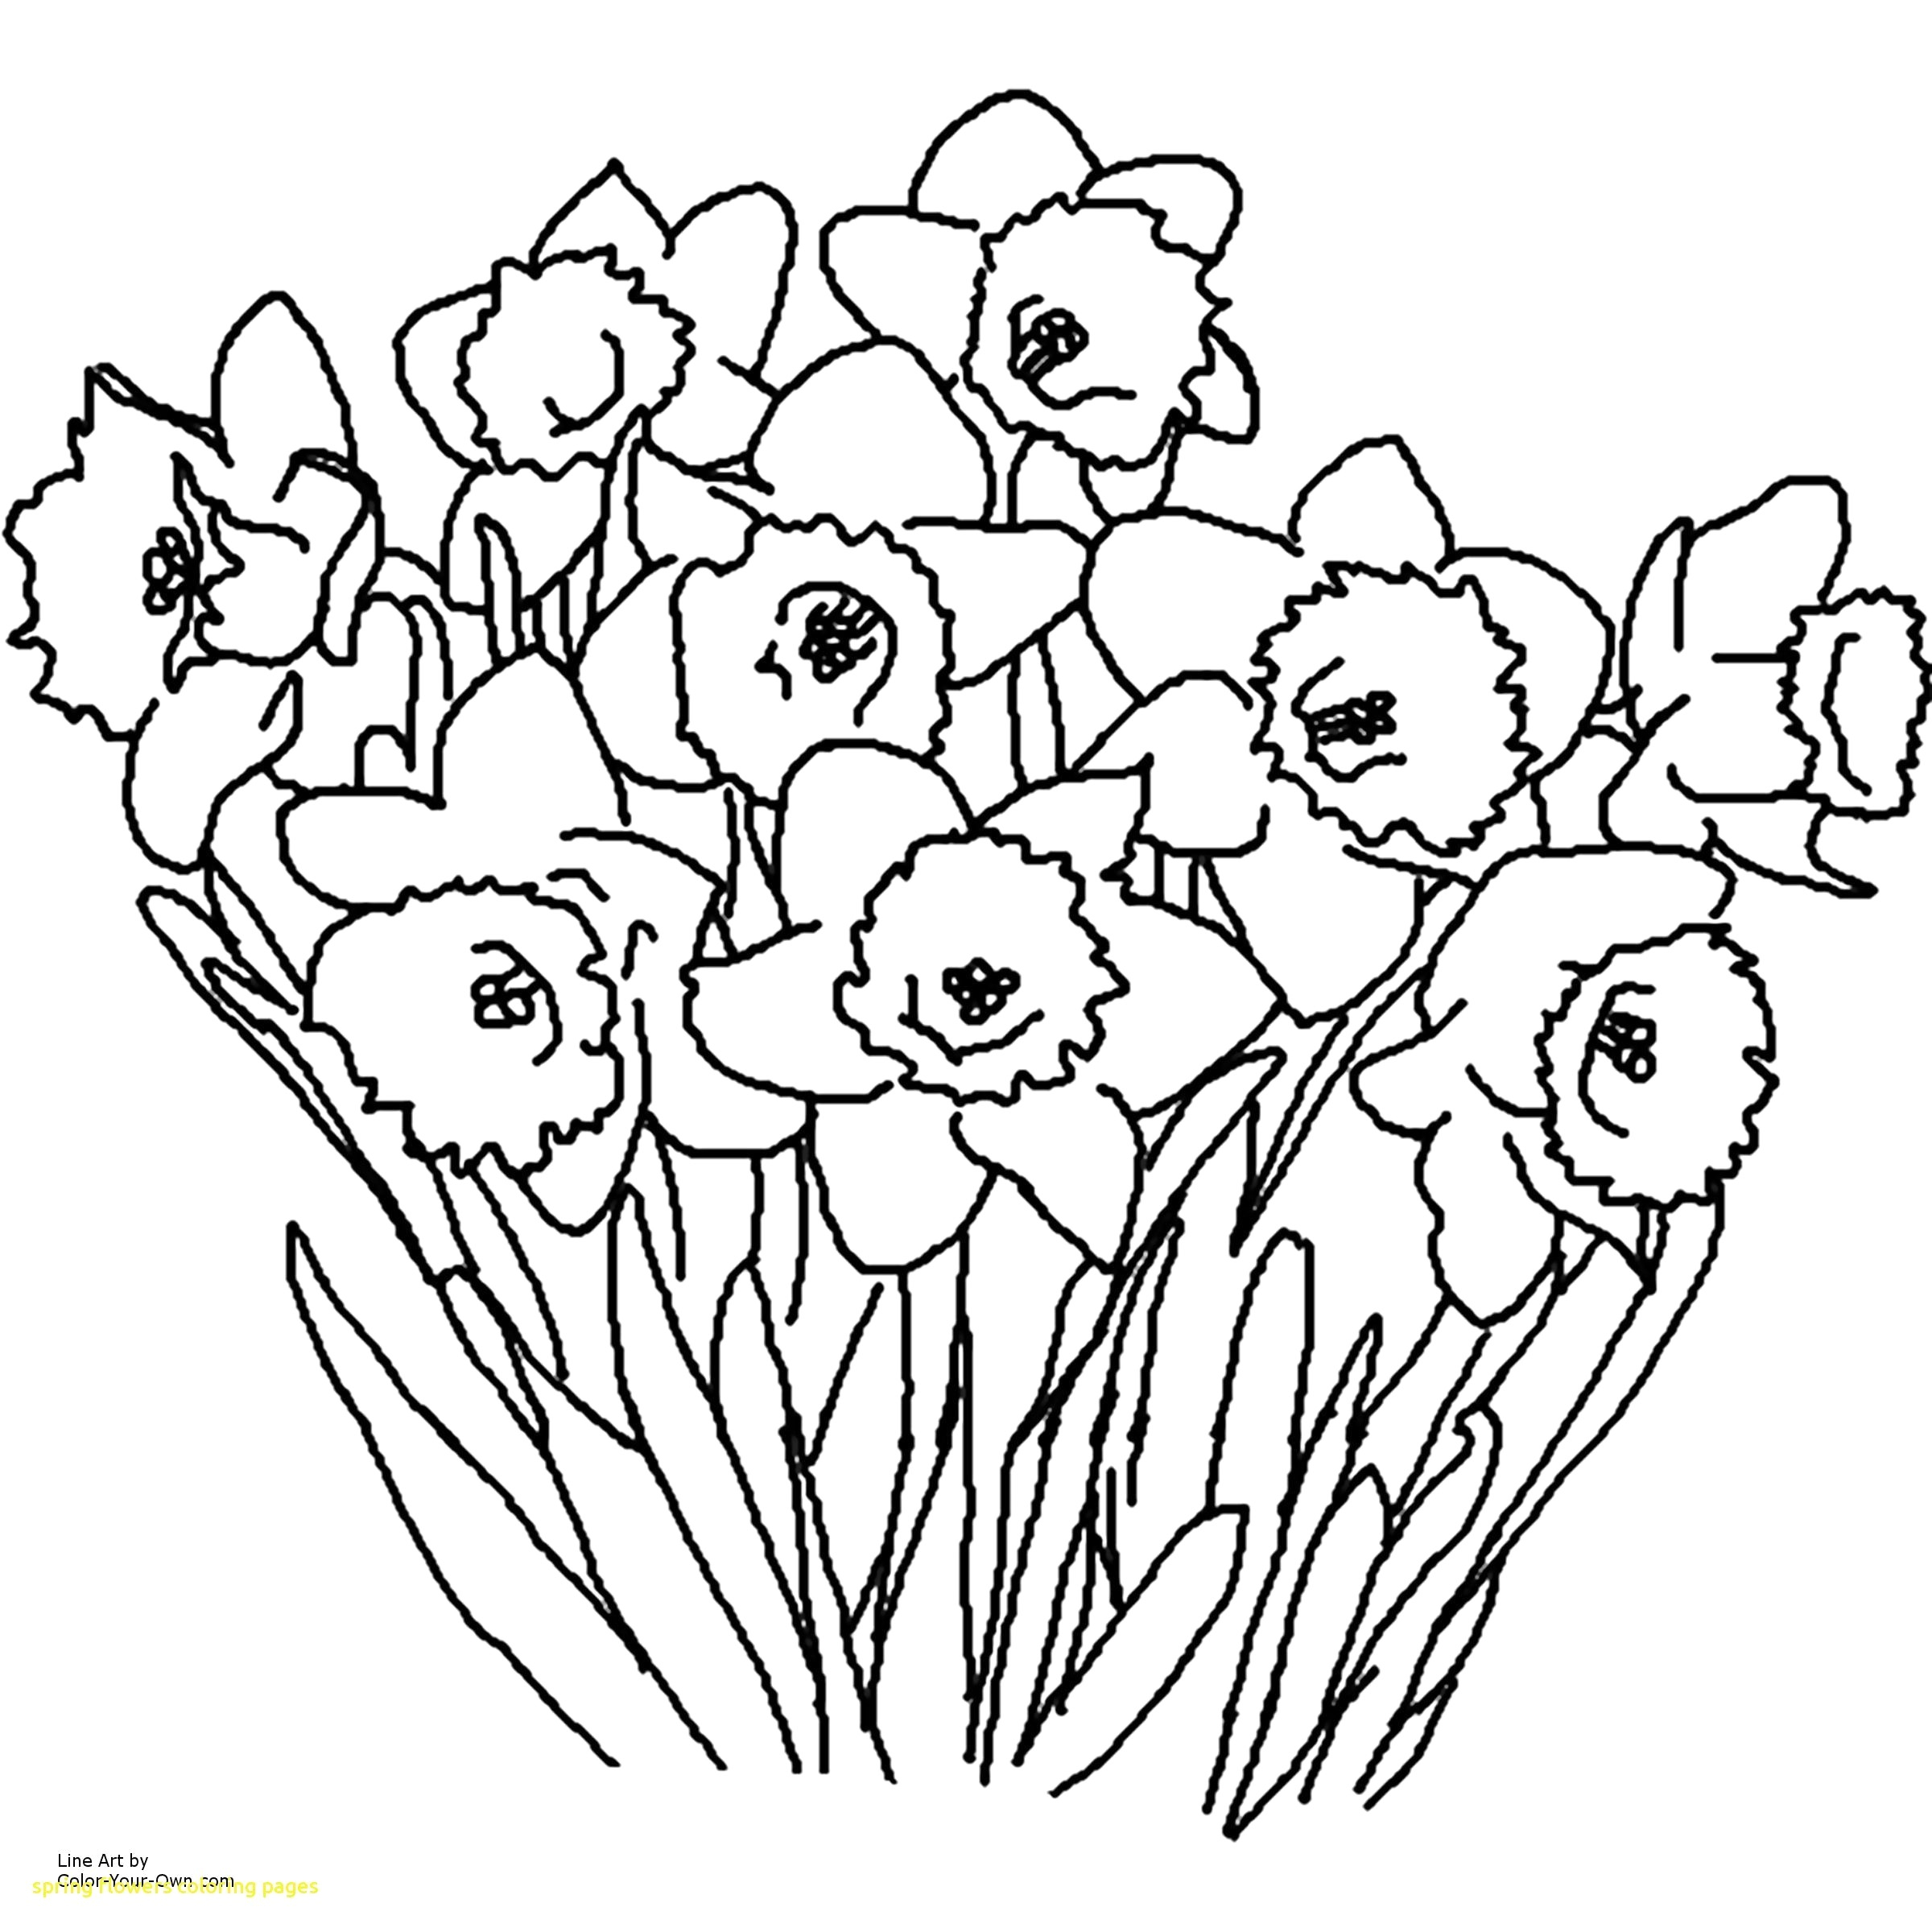 Spring Flowers Coloring Pages Delivered Flowers Coloring Pages Spring Flower Coloringsuite Com